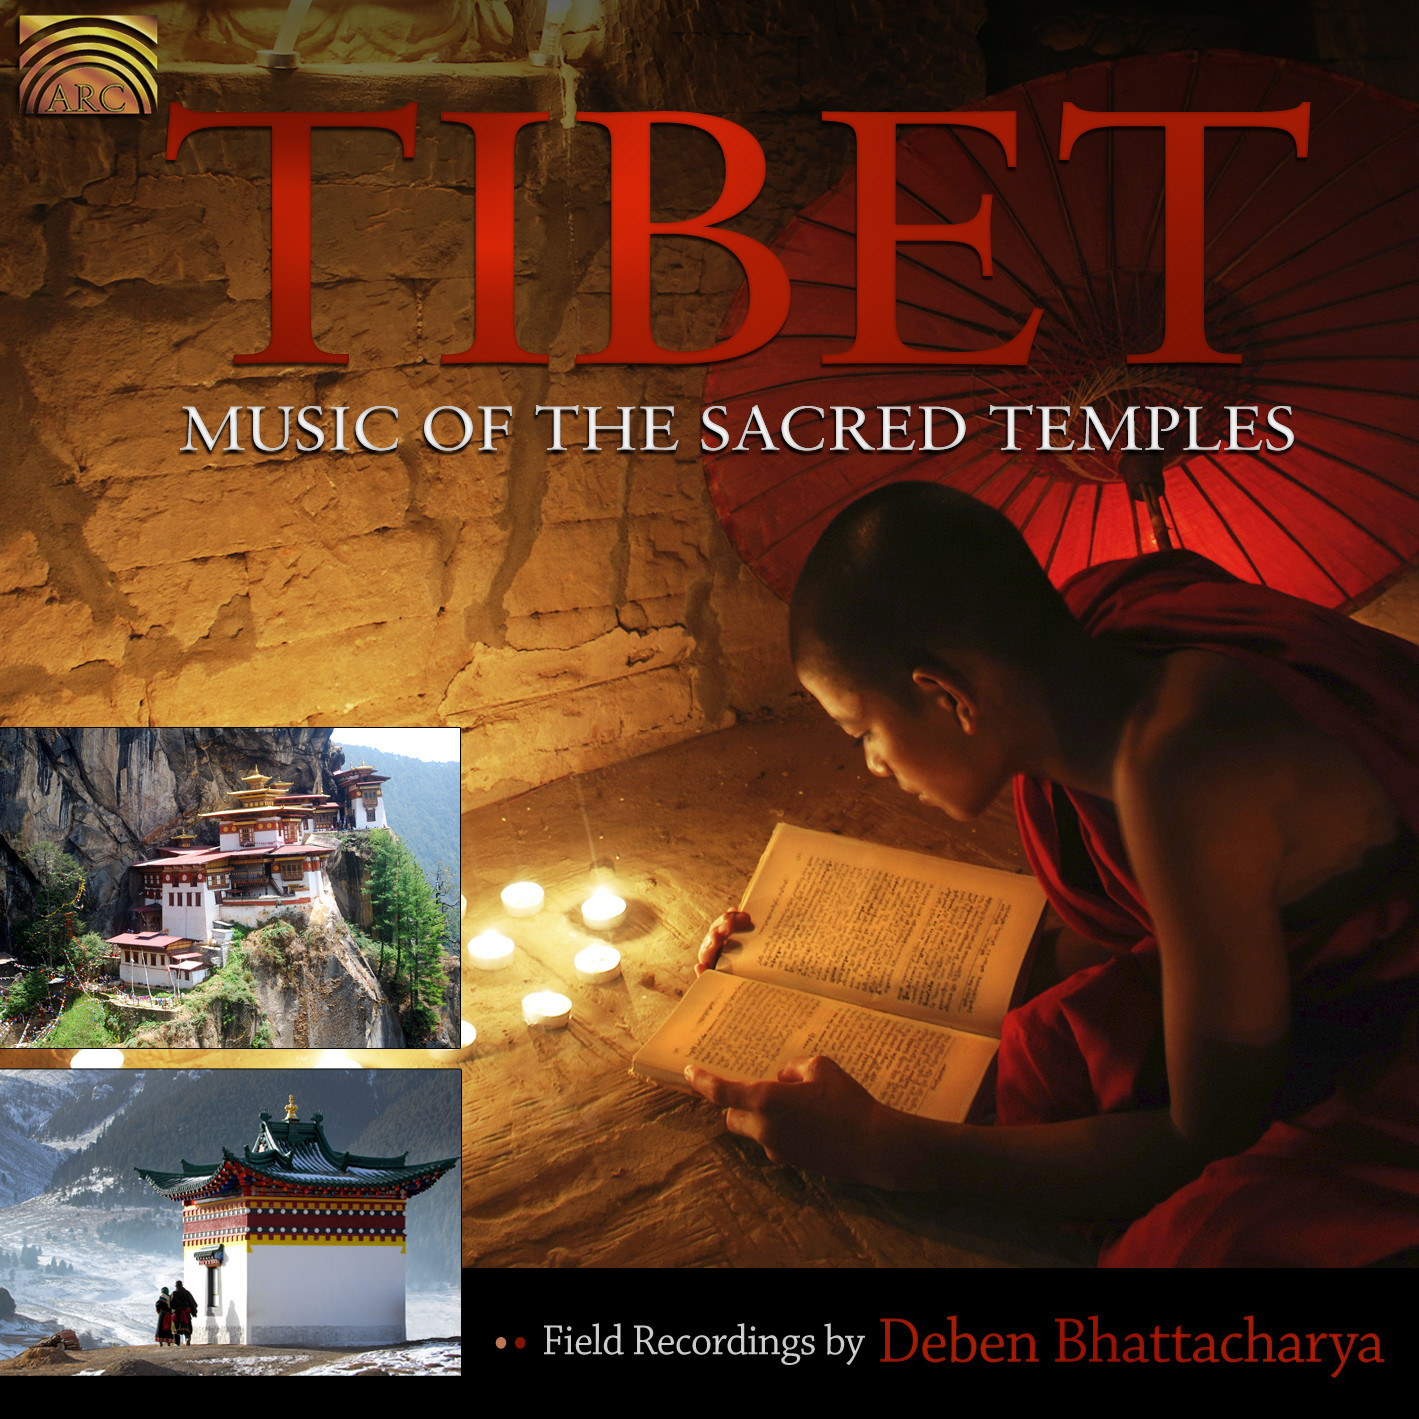 EUCD2325 Tibet - Music of the Sacred Temples - Field Recordings by Deben Bhattacharya